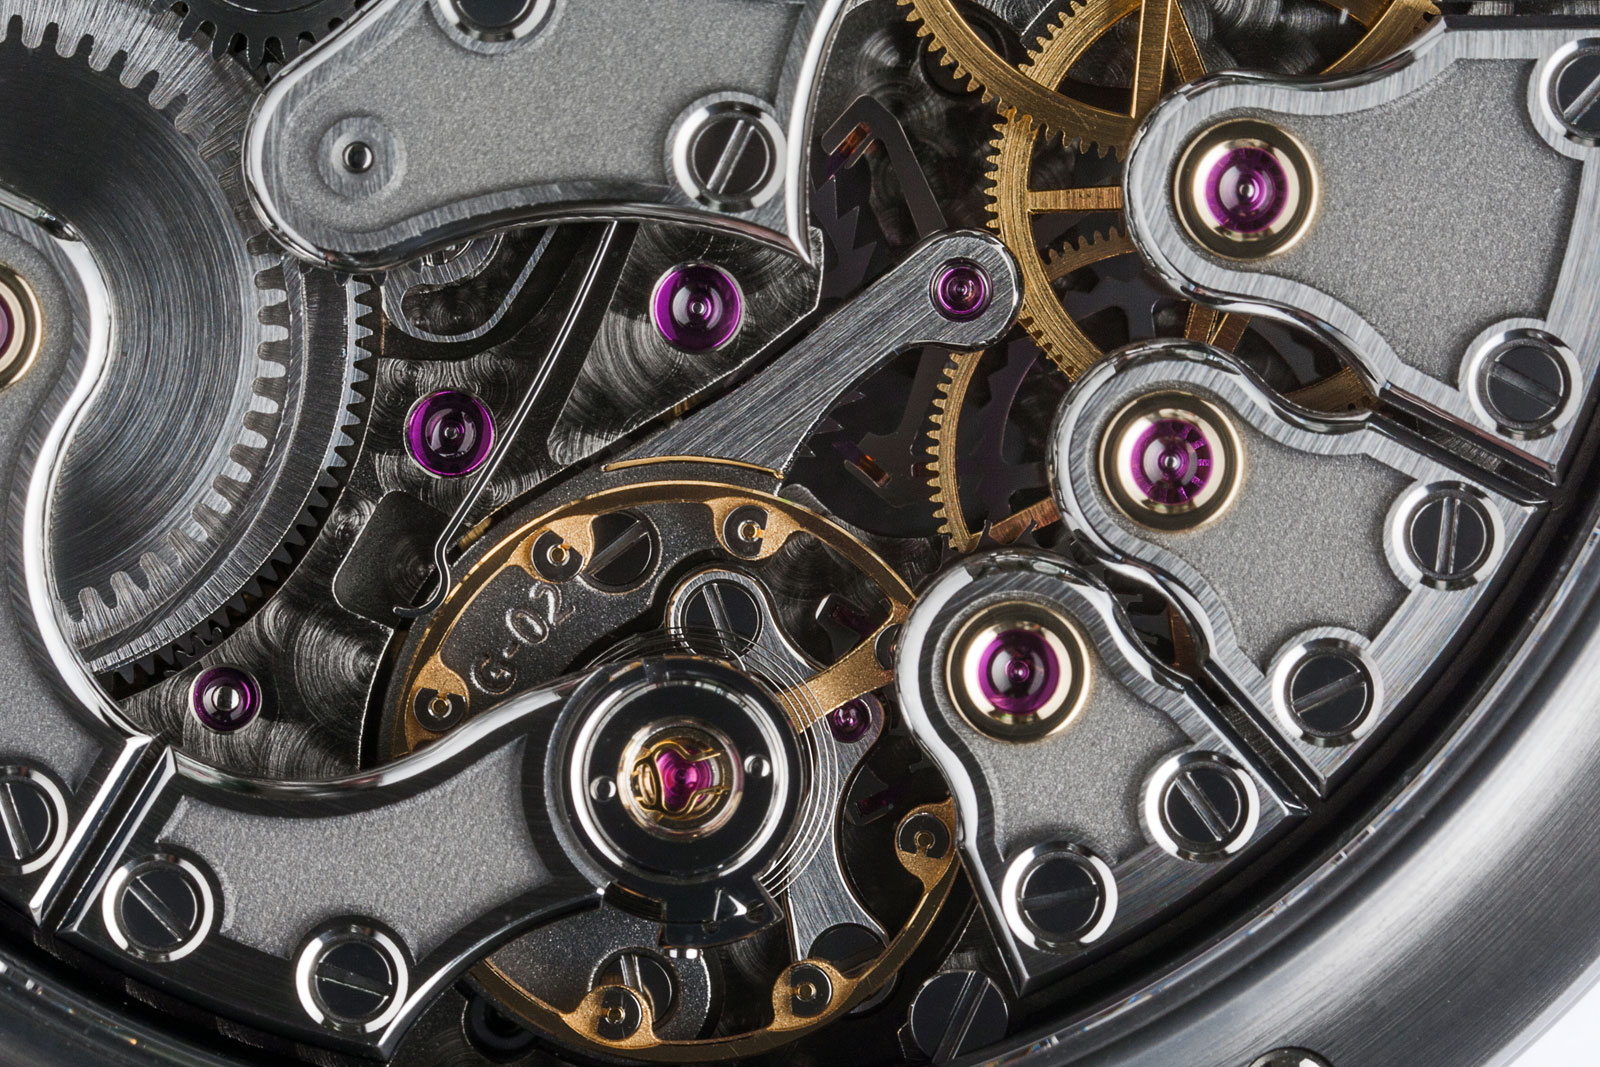 Gronefeld One Hertz Techniek Nocturne closeup movement